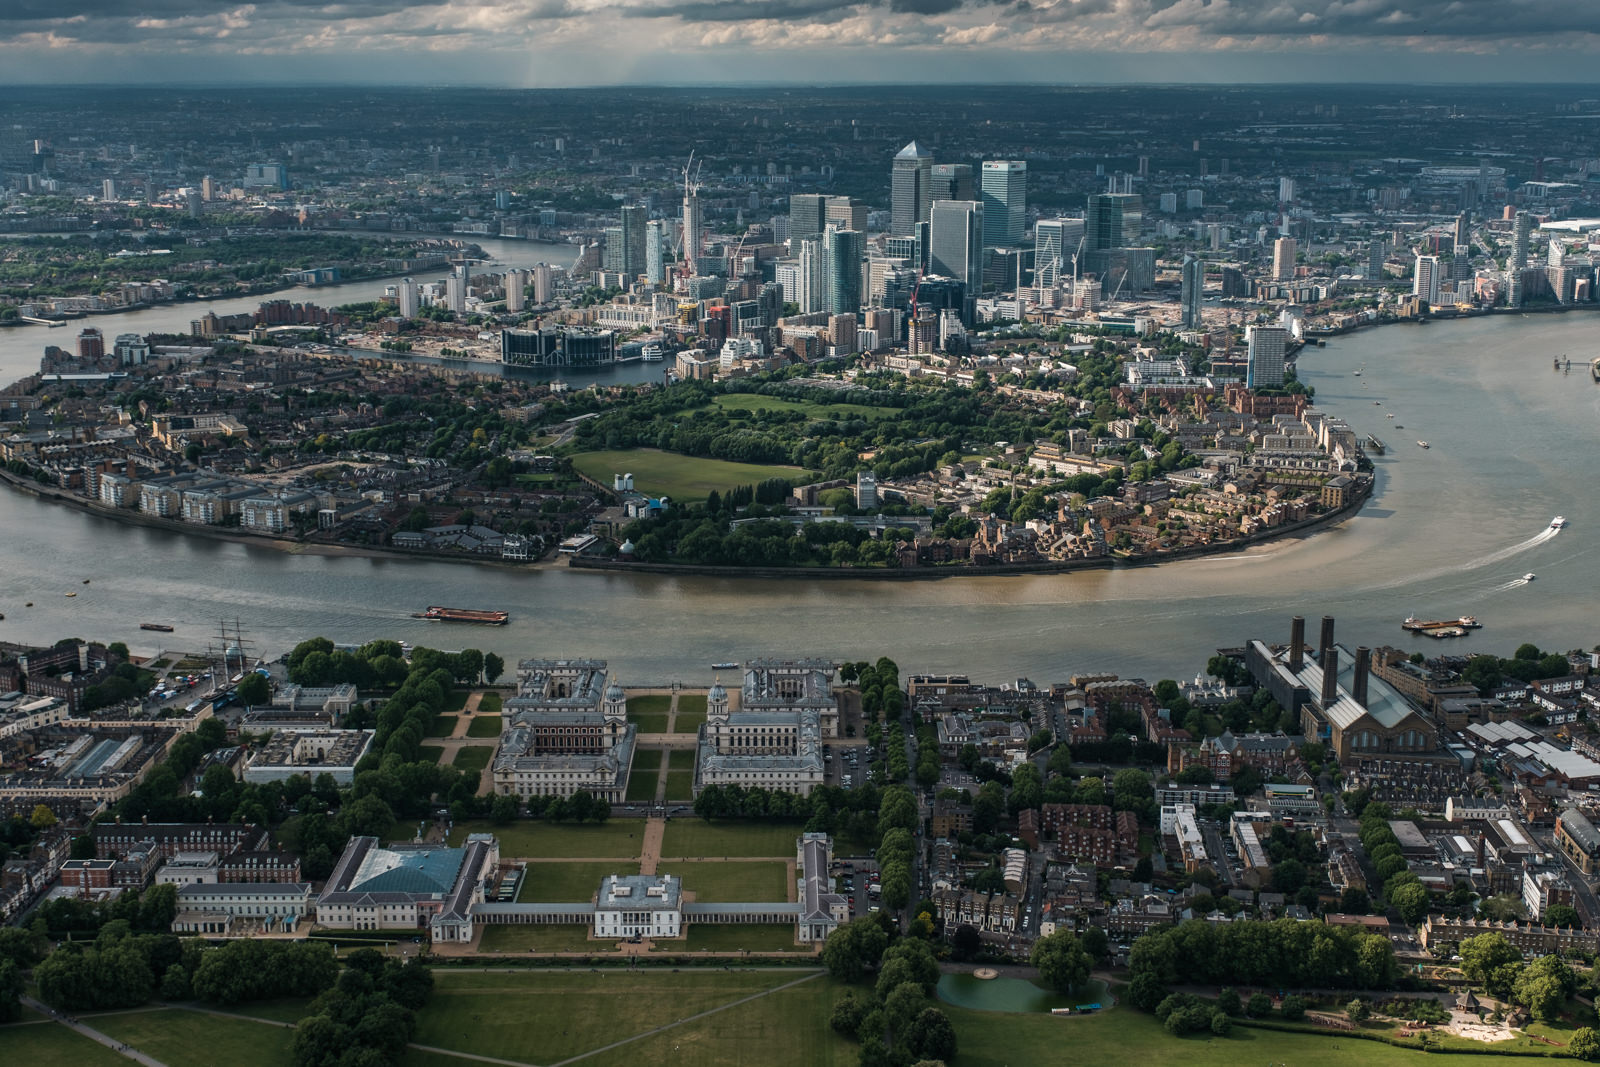 Isle of Dogs and Greenvich- with 16-55mm f2.8 @30mm, f4.5, iso200, 1/1000s